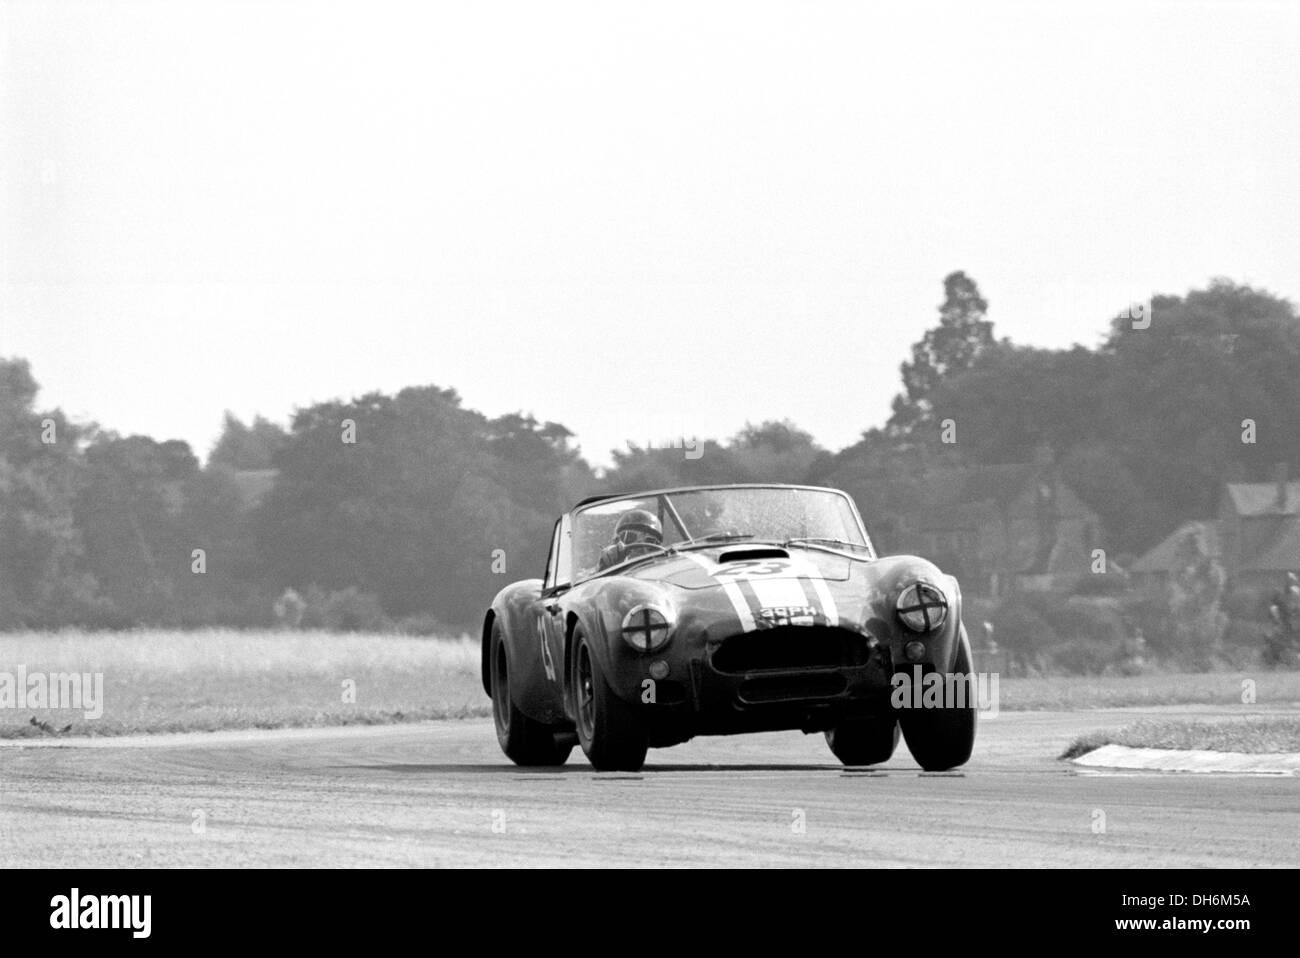 Jack Sears in a Shelby Cobra at St Mary's Corner in the RAC TT race, Goodwood, England 29th August 1964. Stock Photo